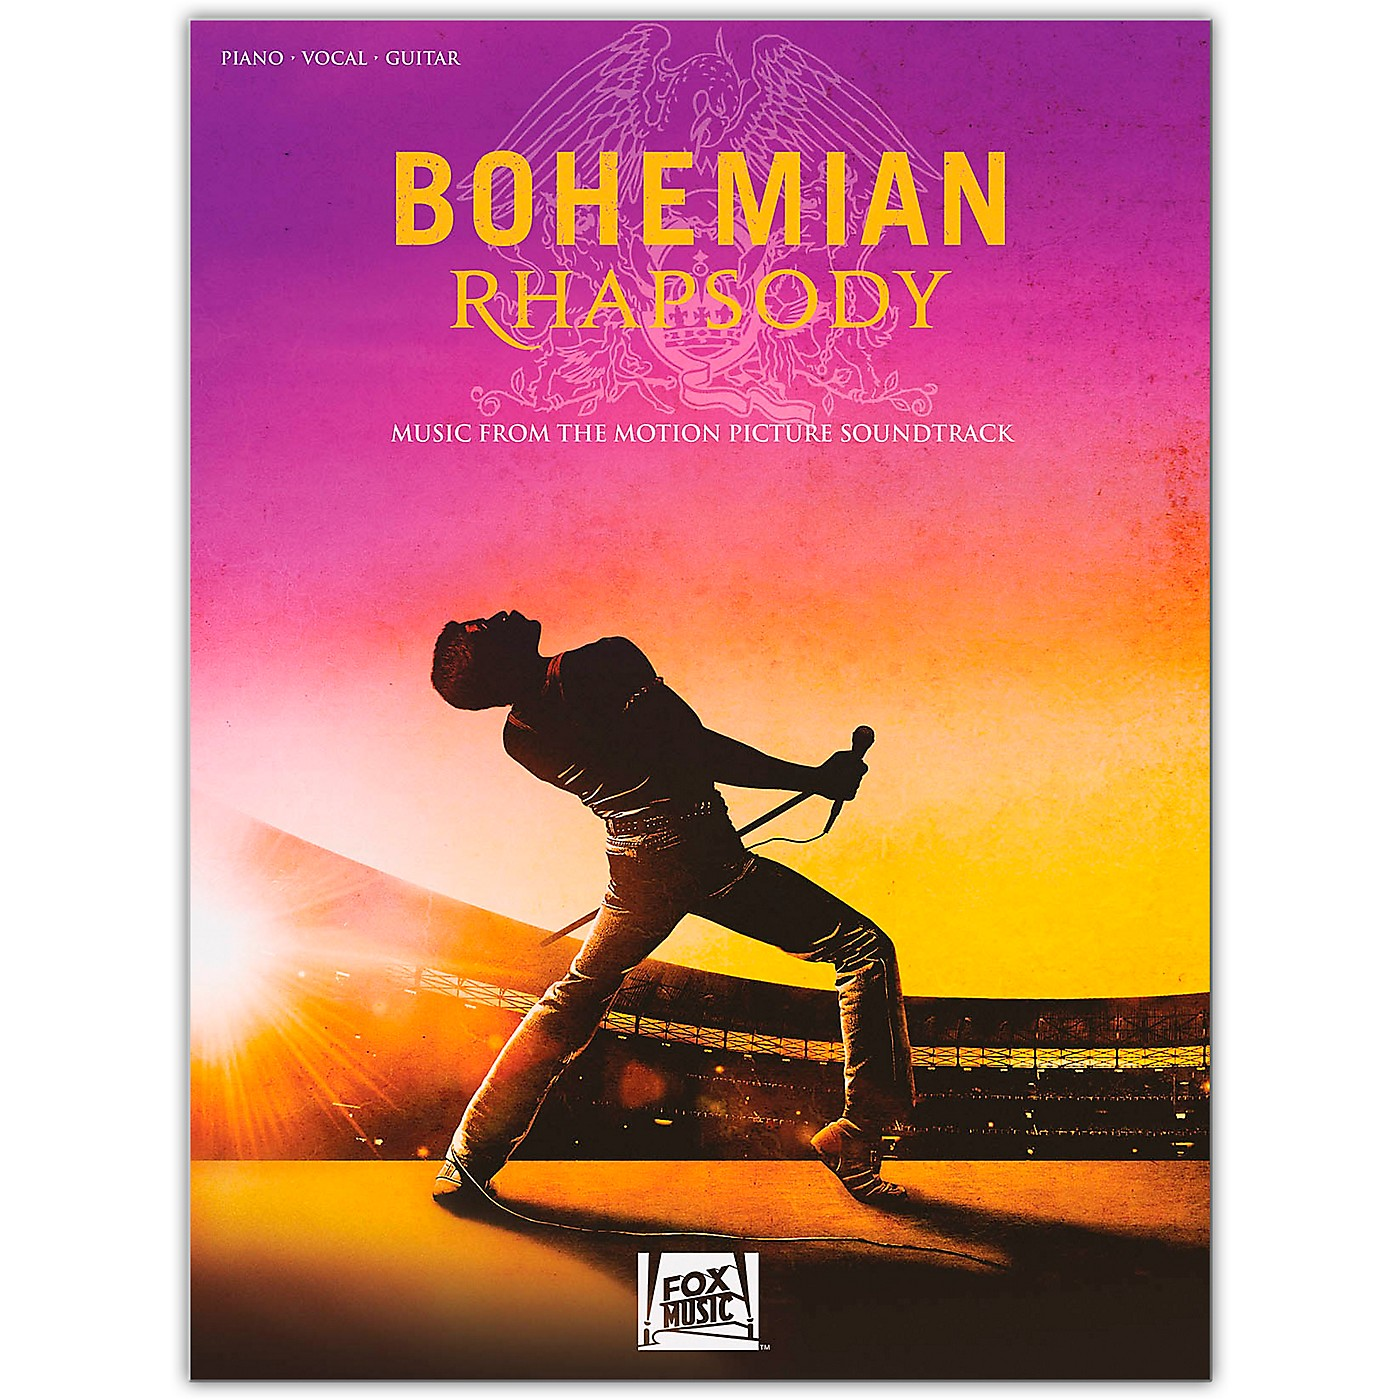 Hal Leonard Bohemian Rhapsody - Music from the Motion Picture Soundtrack Piano/Vocal/Guitar Songbook thumbnail